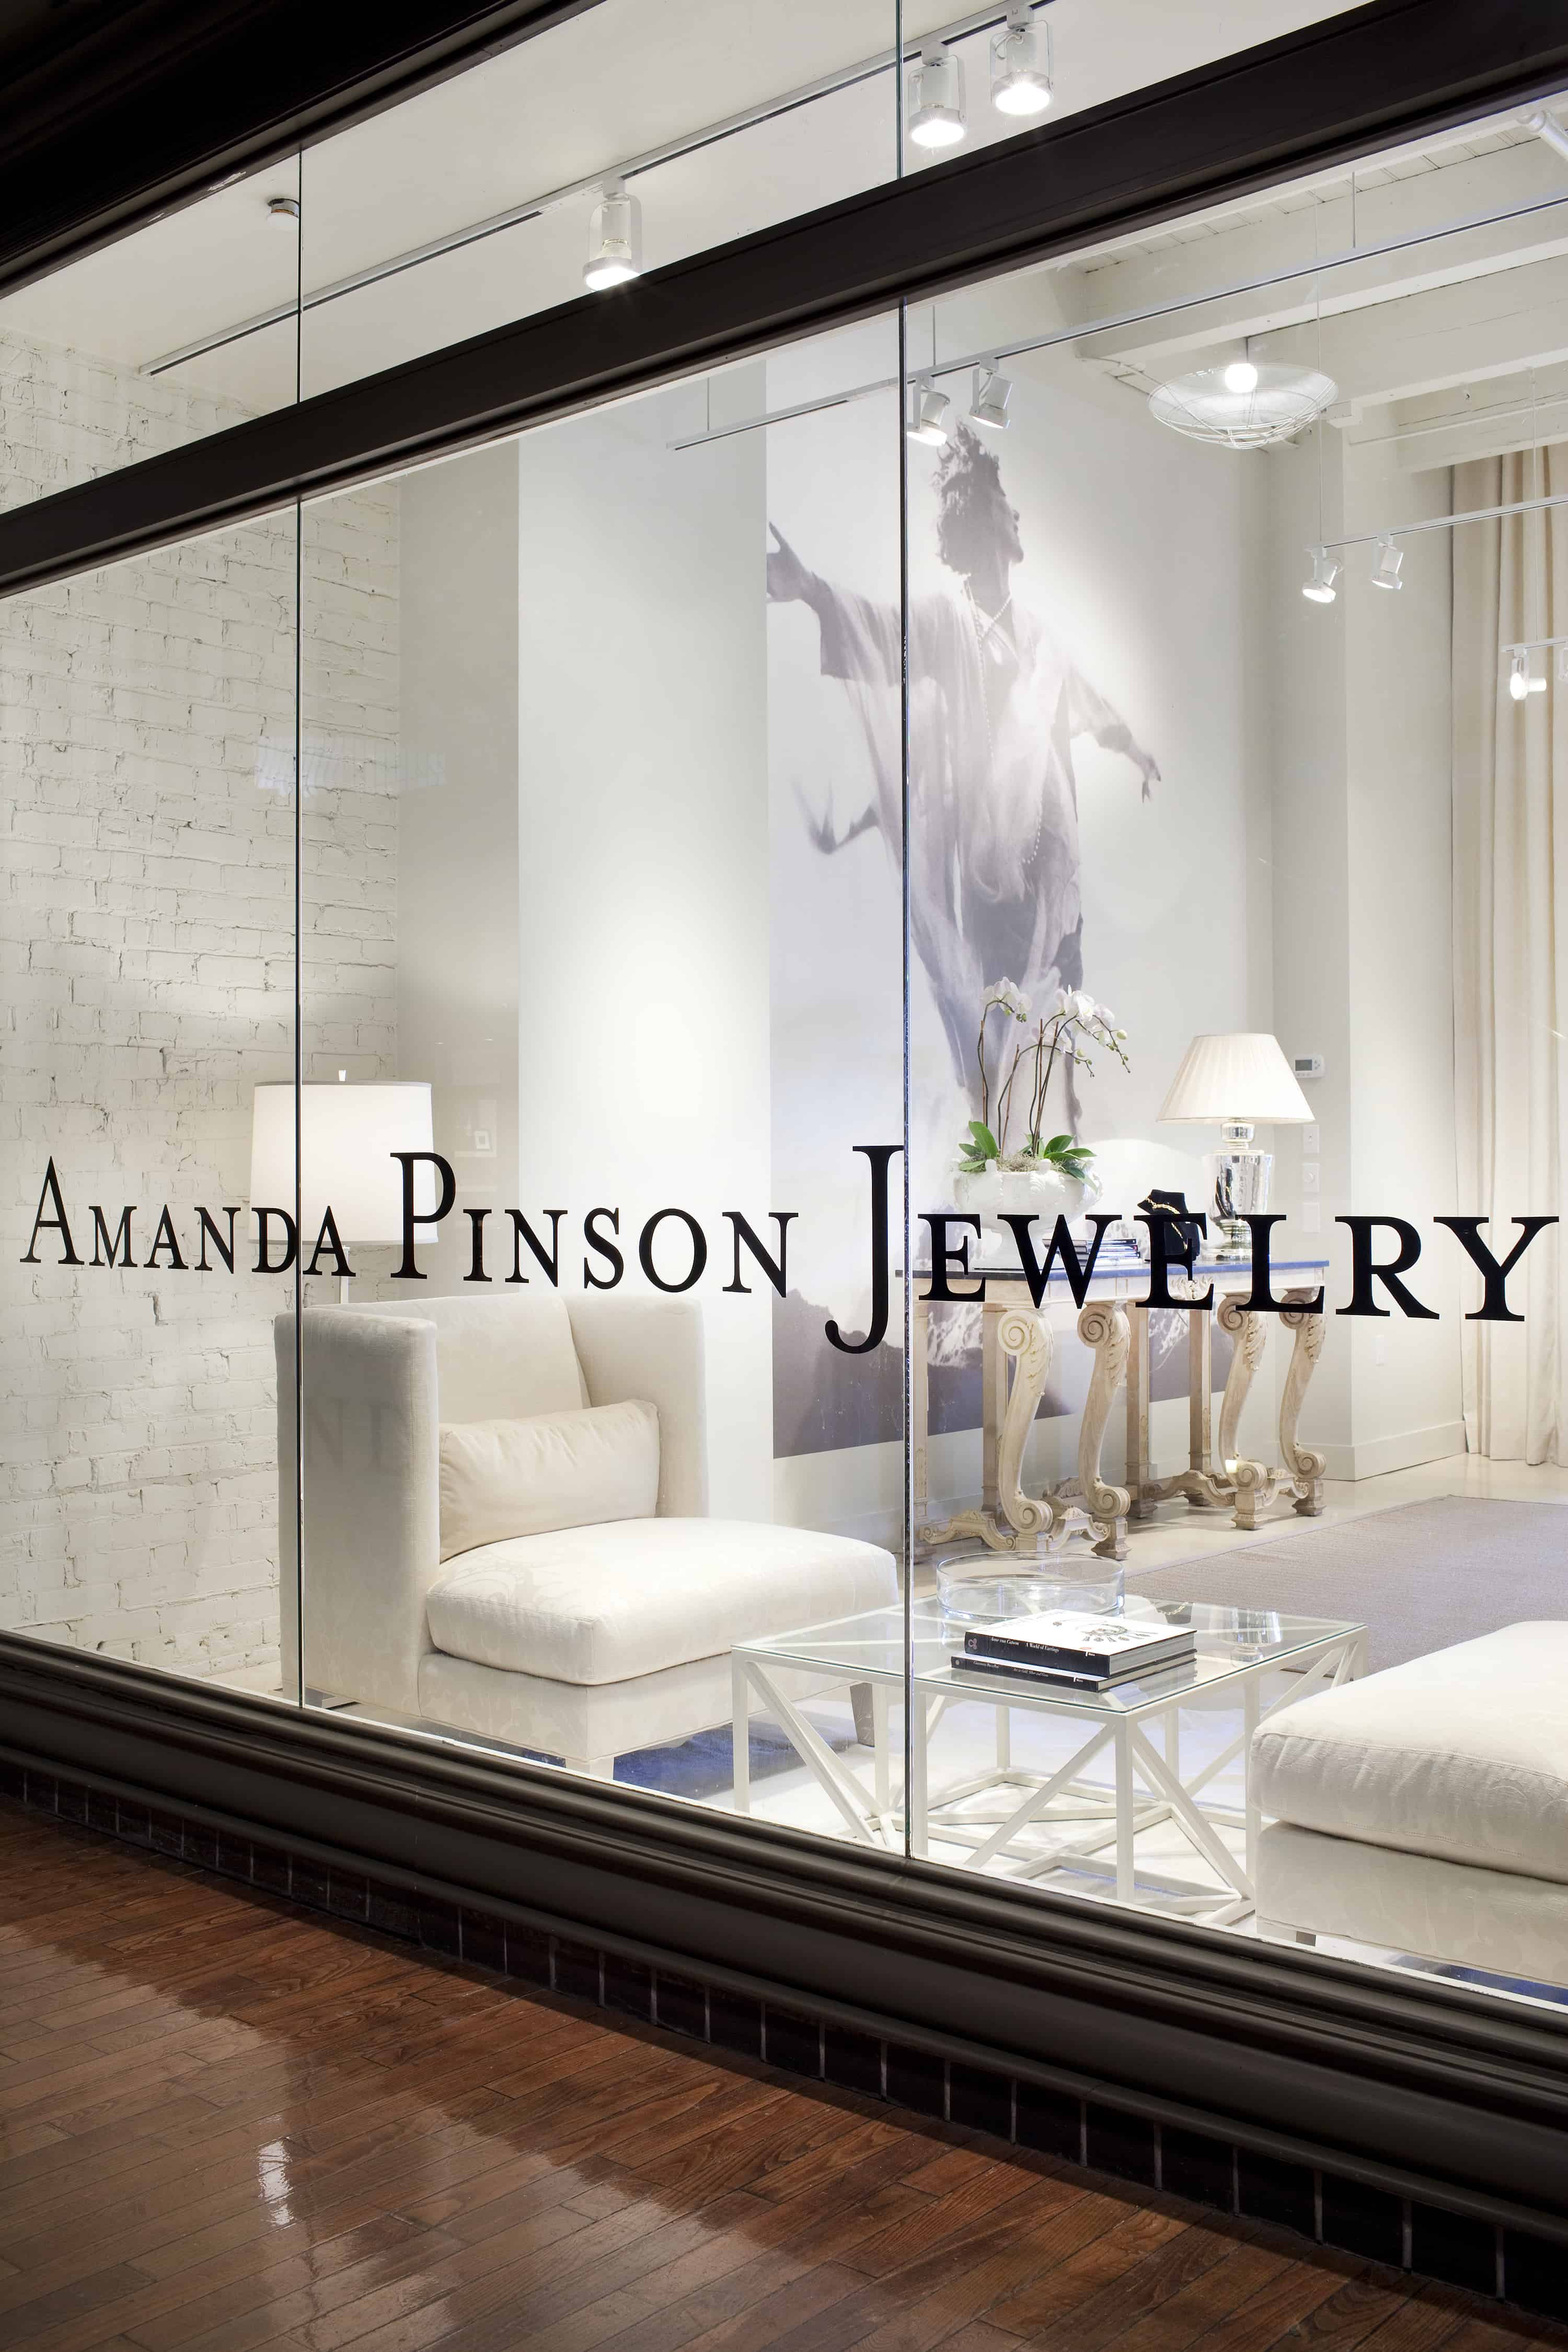 Amanda Pinson Jewelry @ Warehouse Row